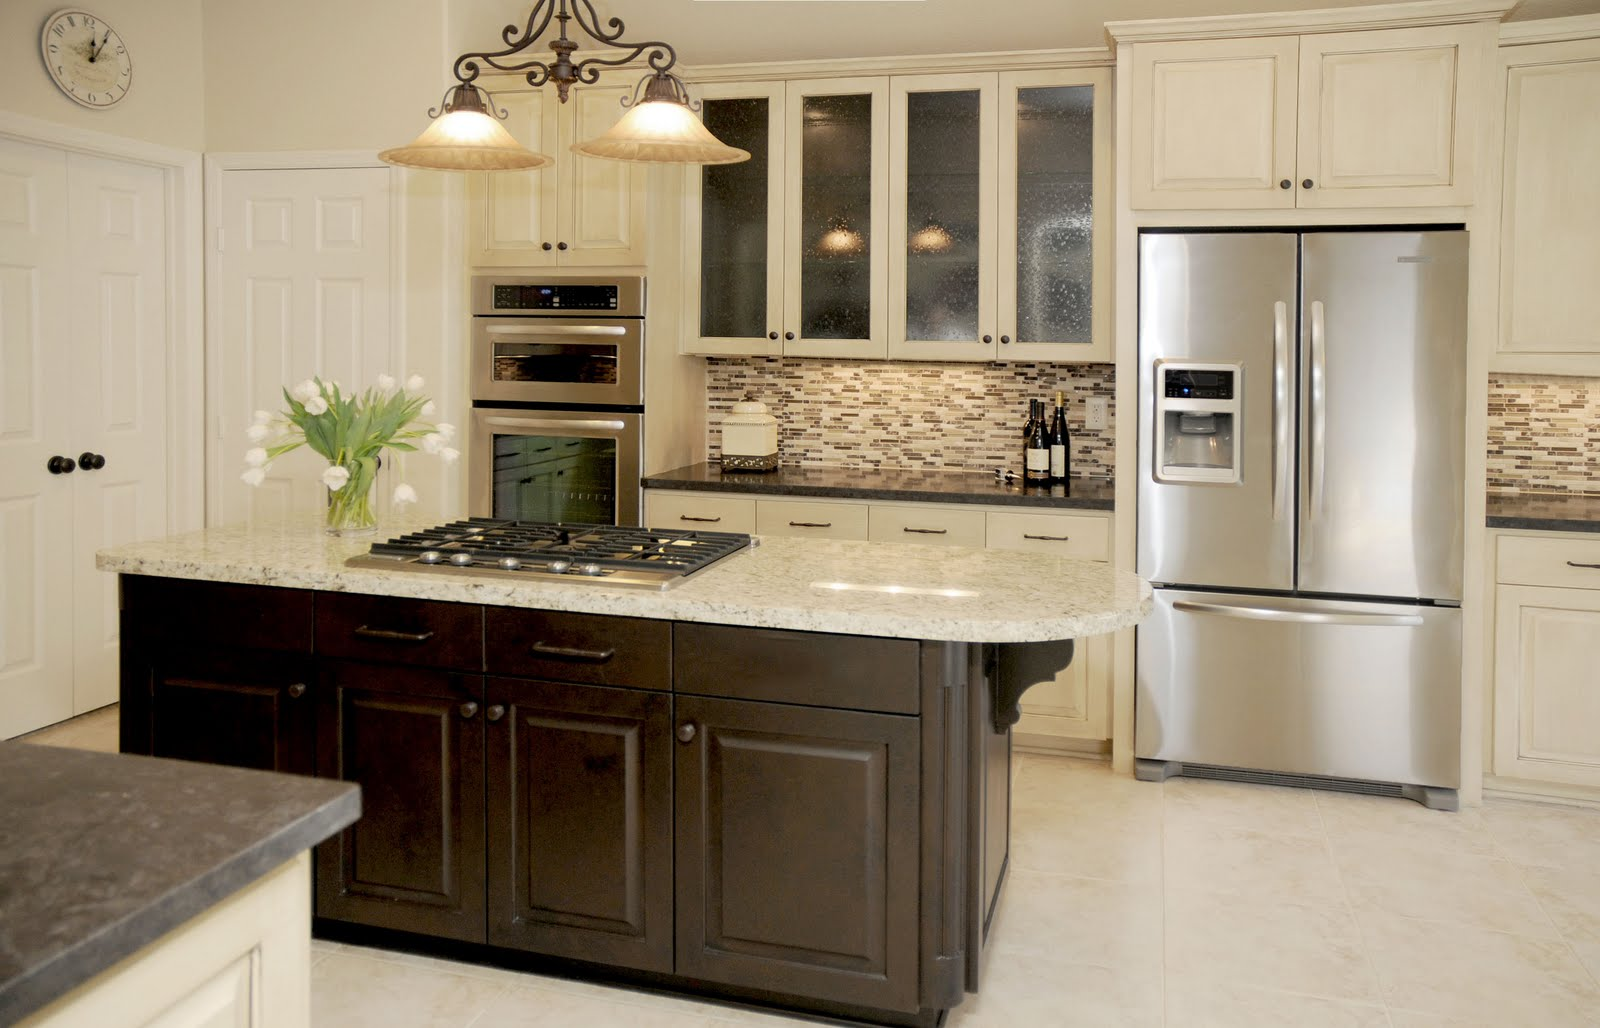 Galley kitchen remodels before and after kitchen design for Kitchen and remodeling